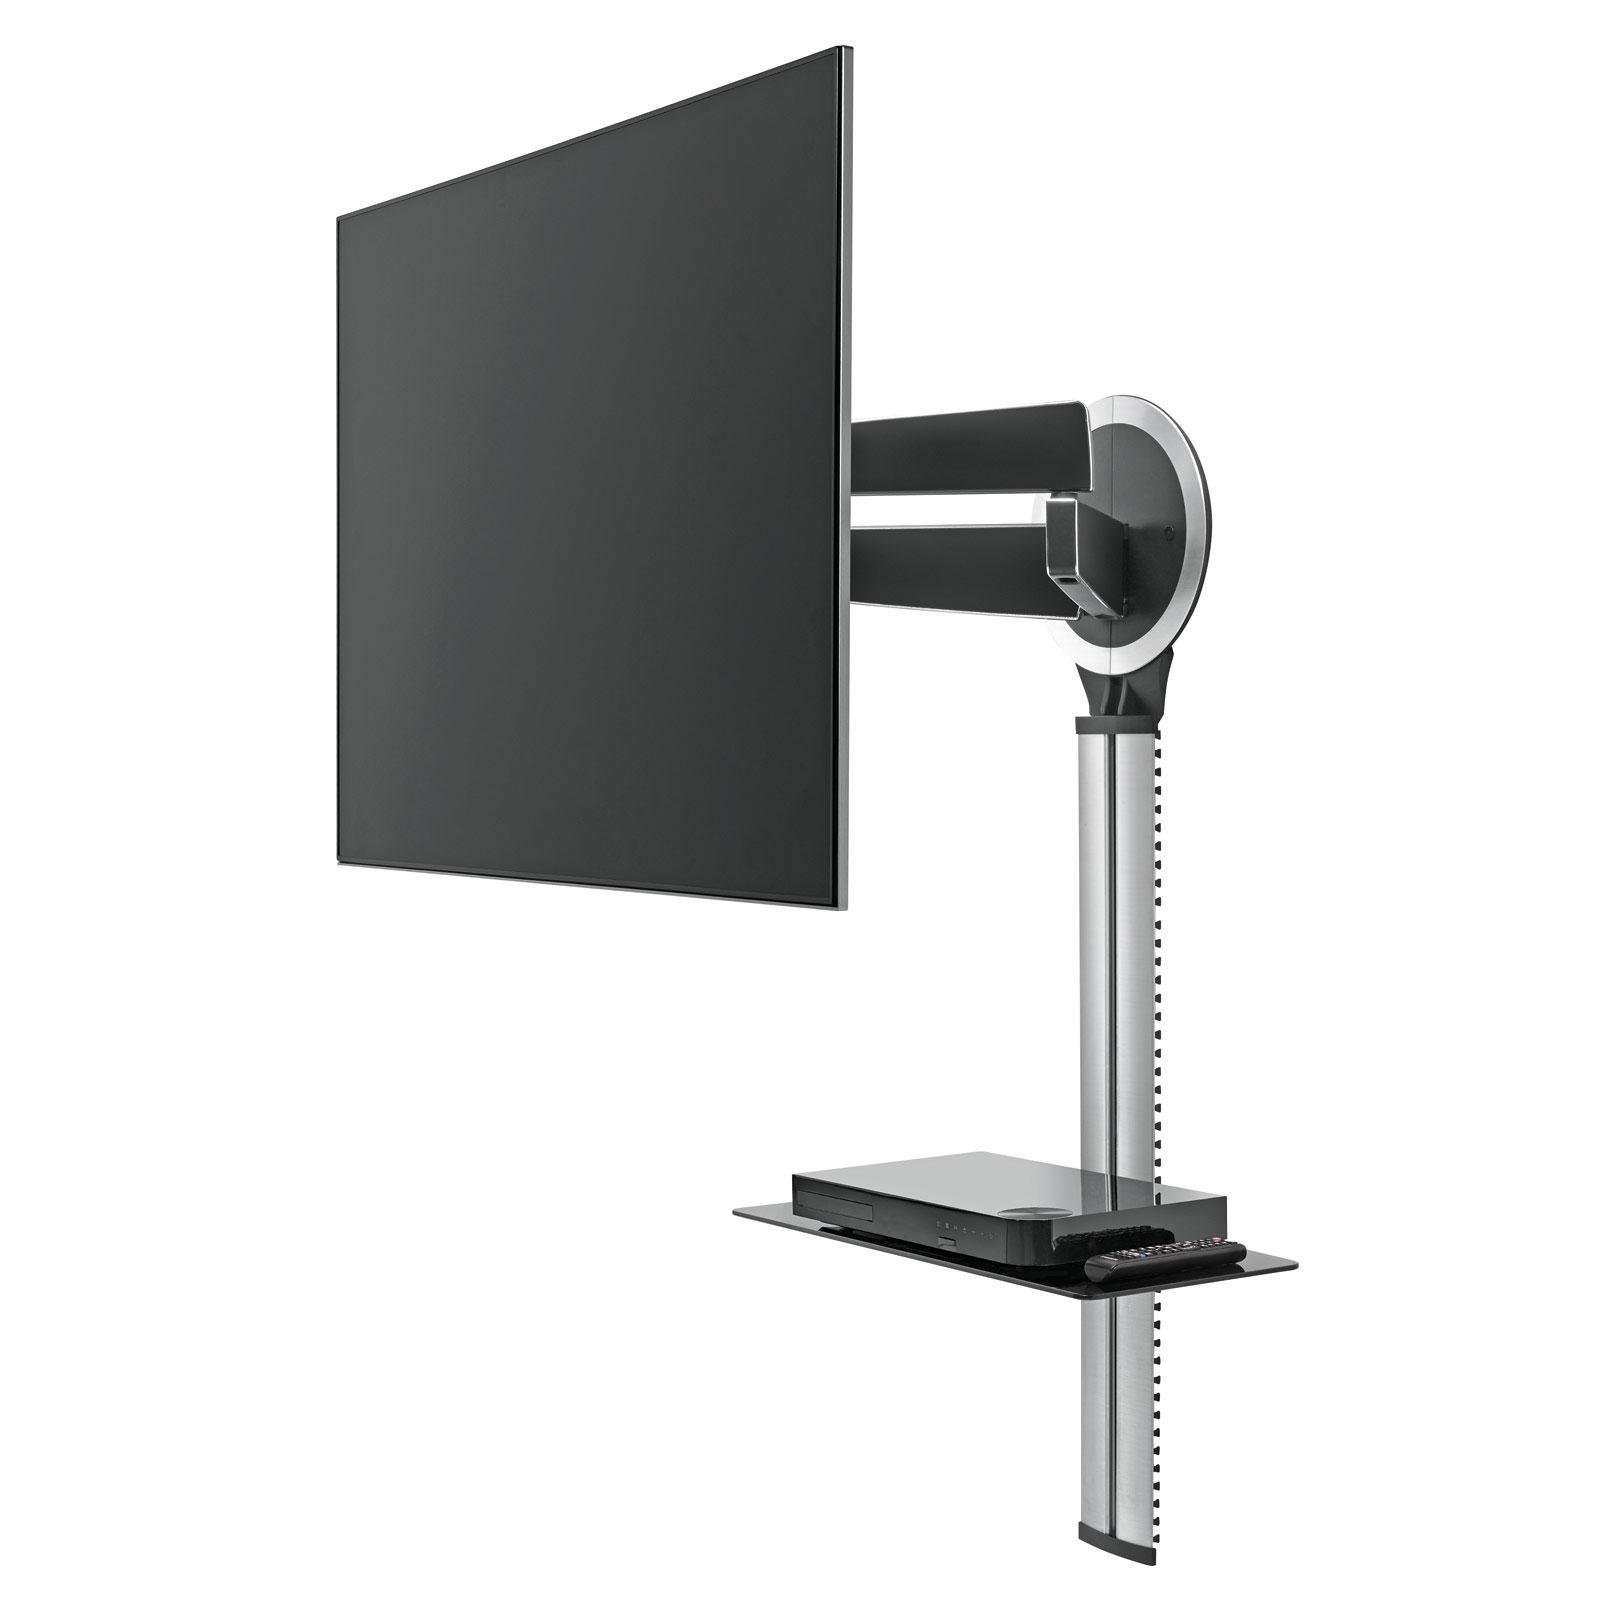 Support Mural Tv Avec Cache Cable Firstcdiscount